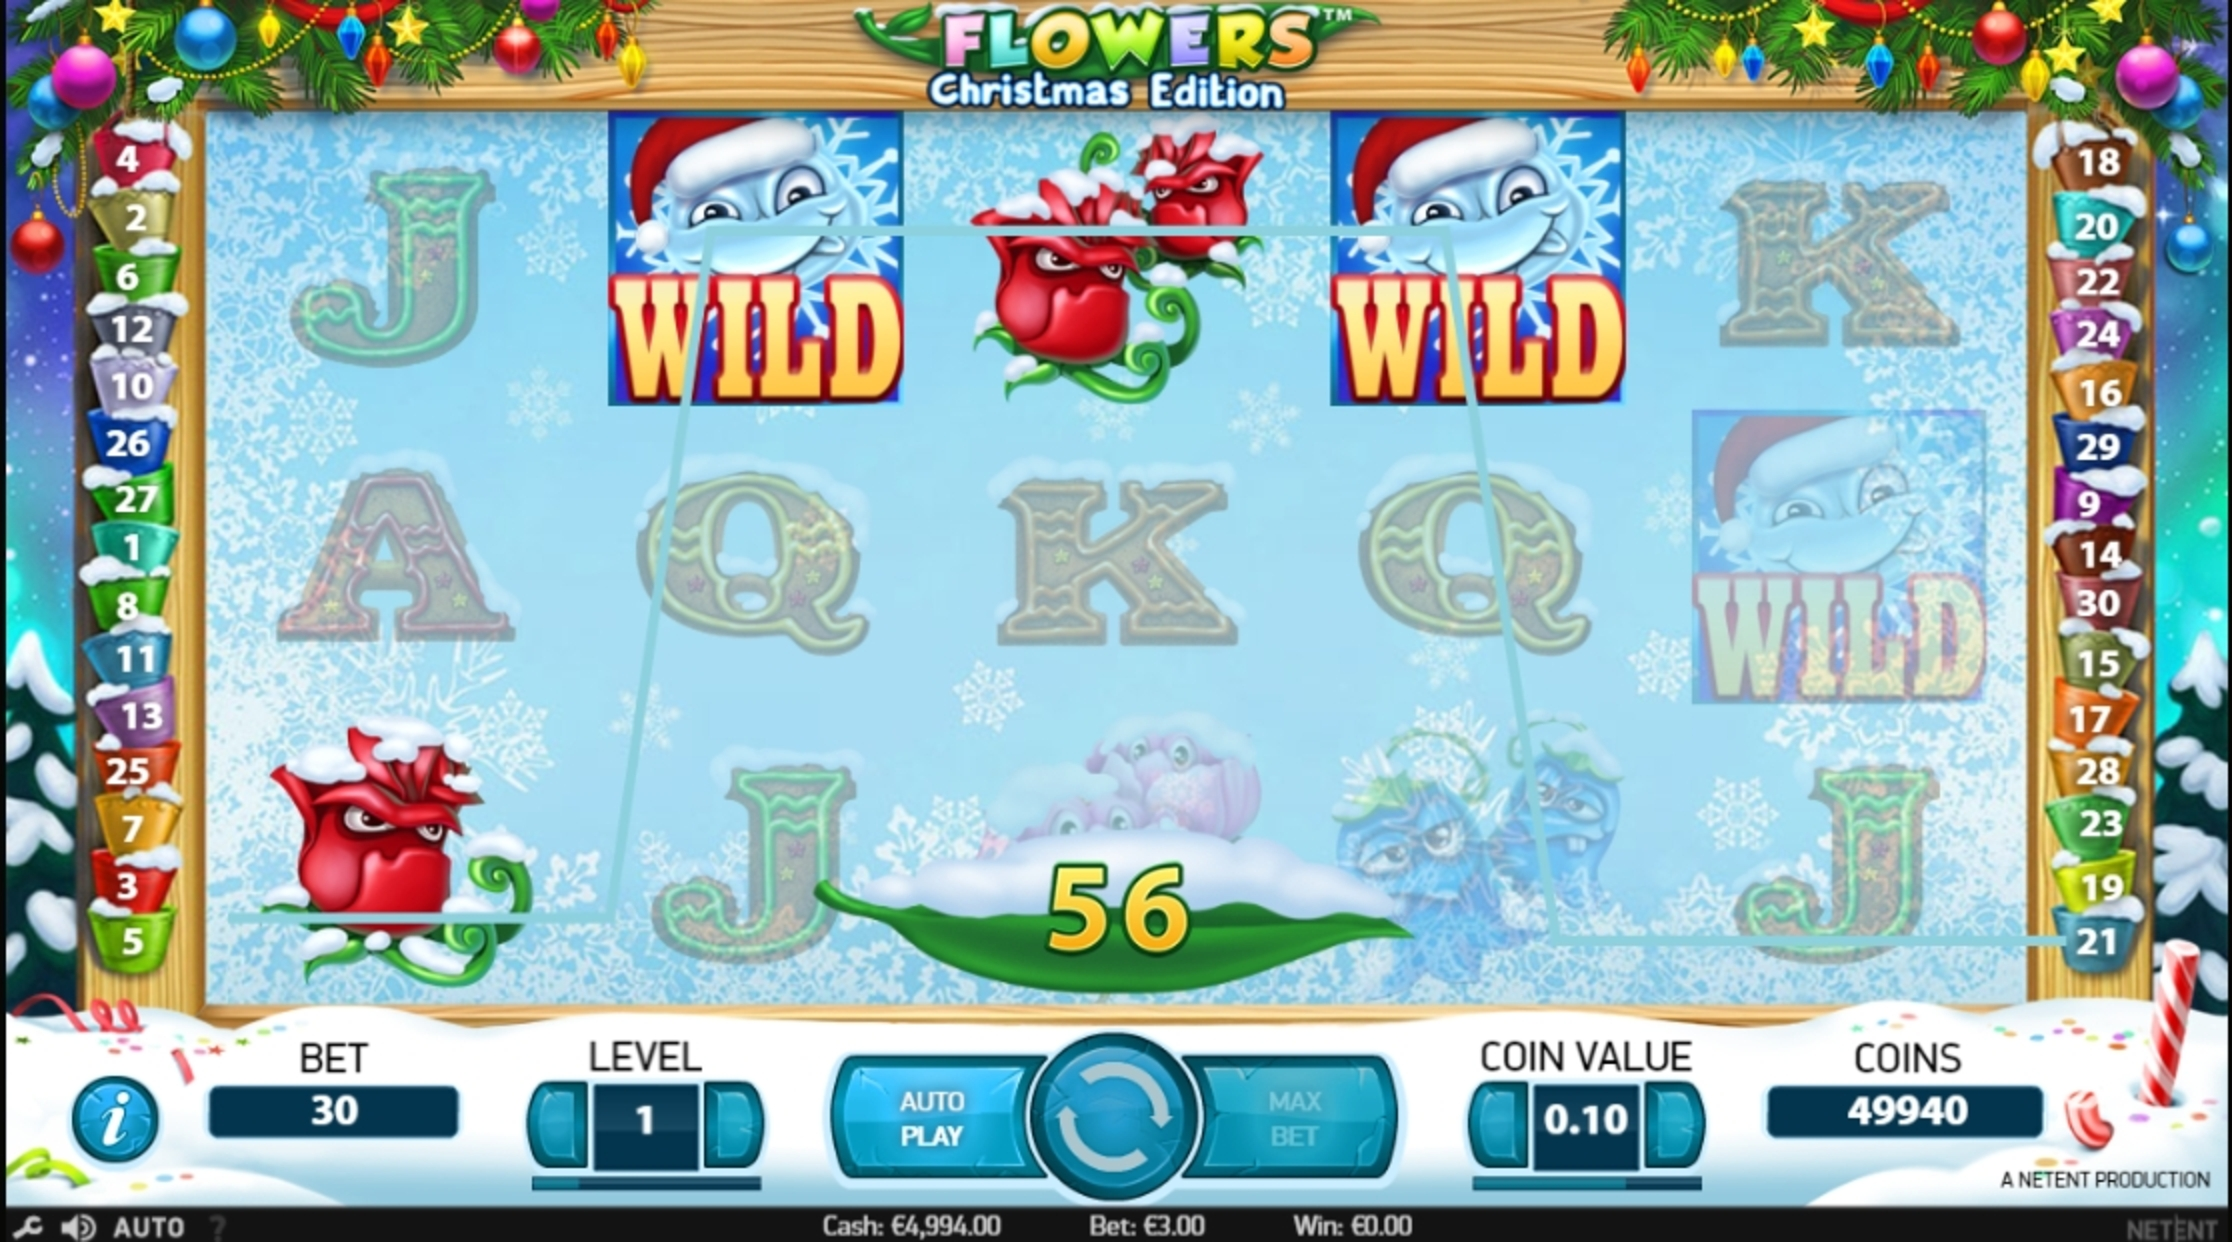 Win Money in Flowers Christmas Edition Free Slot Game by NetEnt